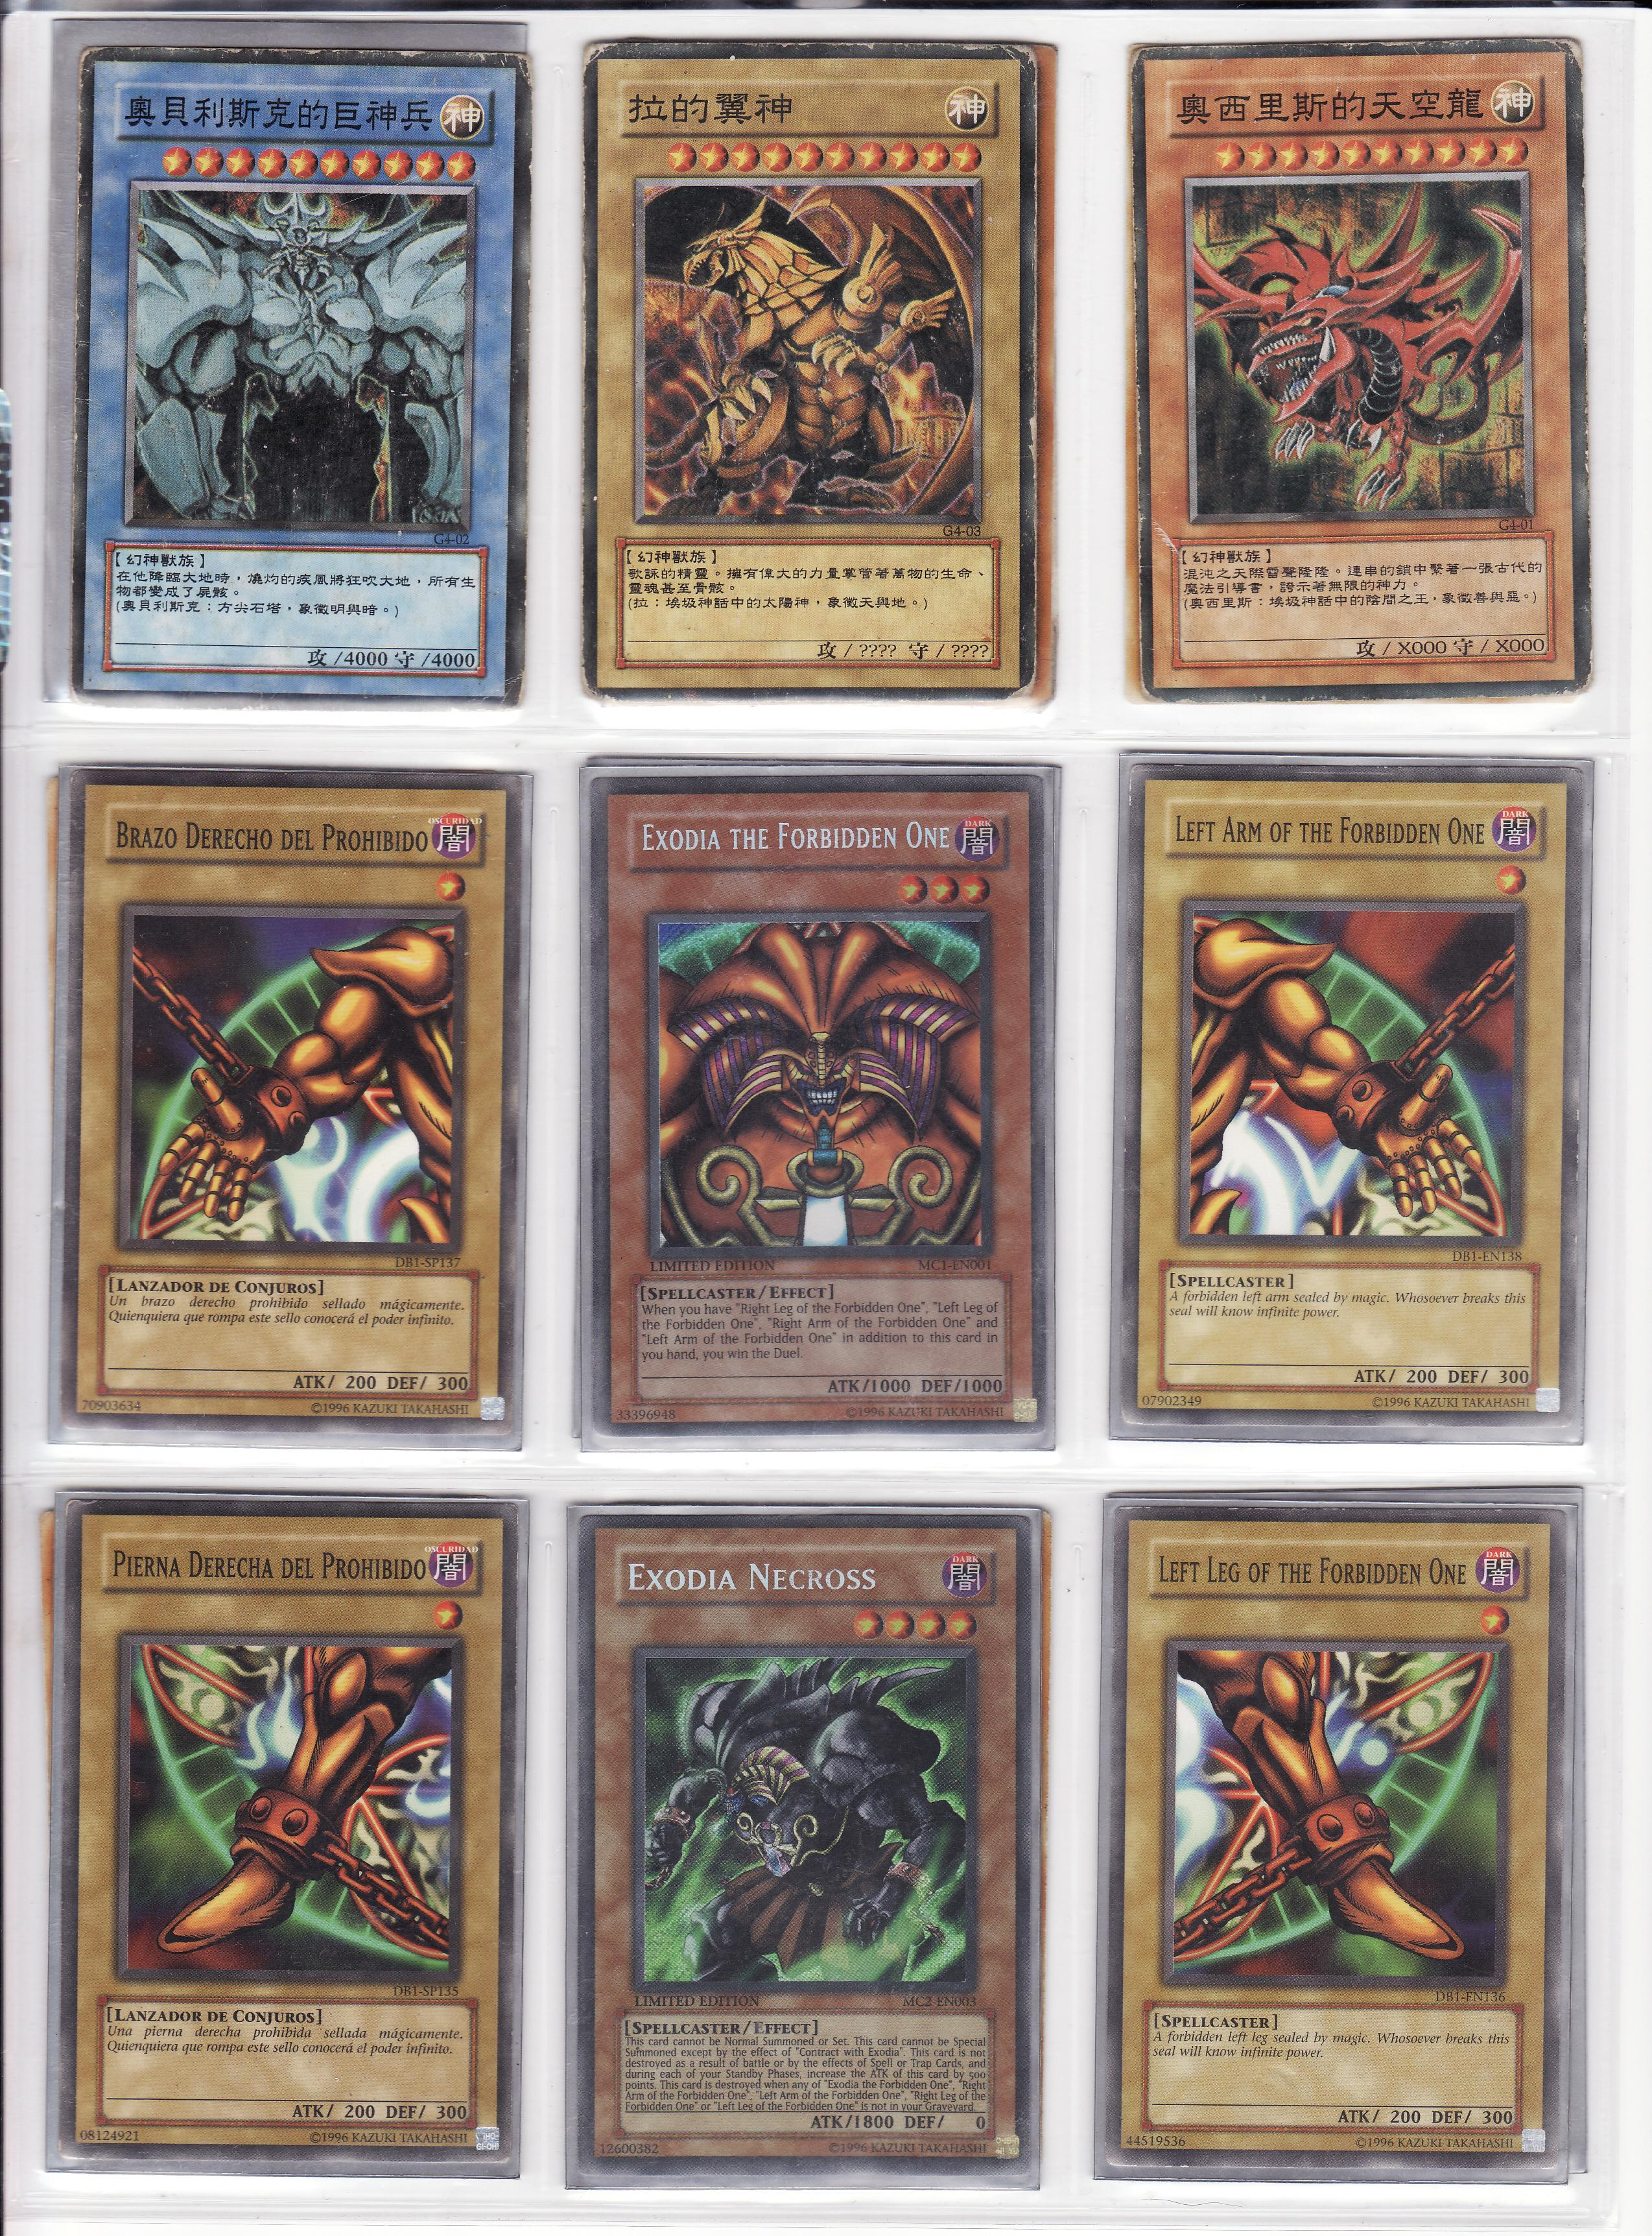 [Yu-Gi-Oh!] Yugi's deck is supposed to symbolize the ...